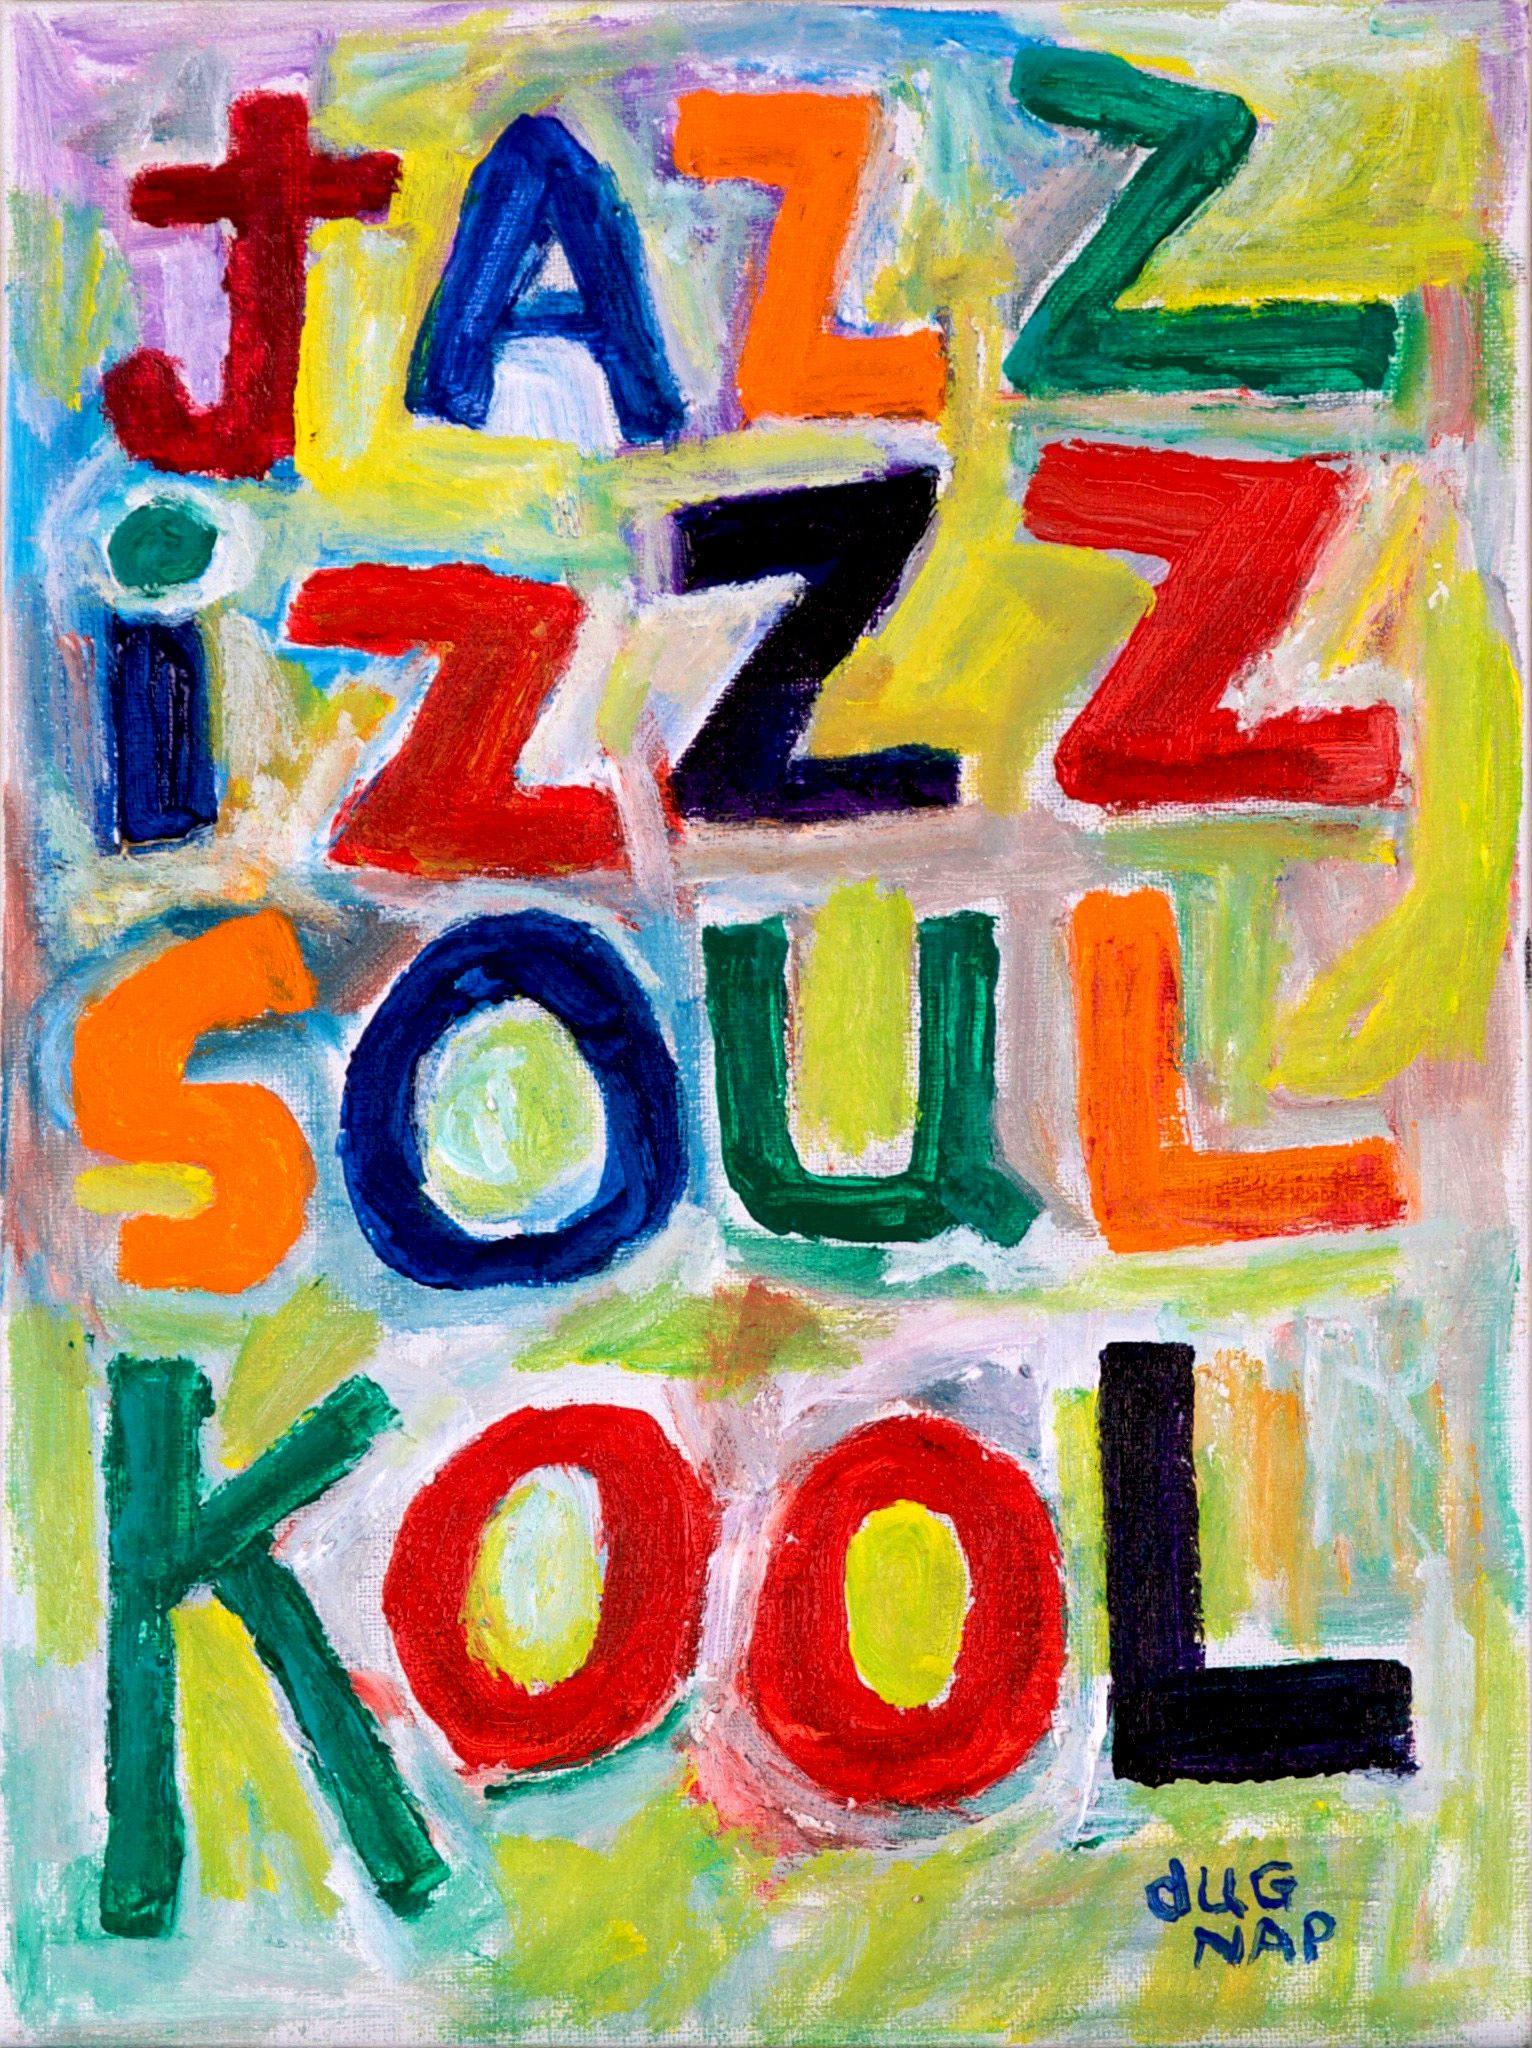 Jazz Izzz Soul Kool - 9 x 12 Oil on Board - dug Nap Art